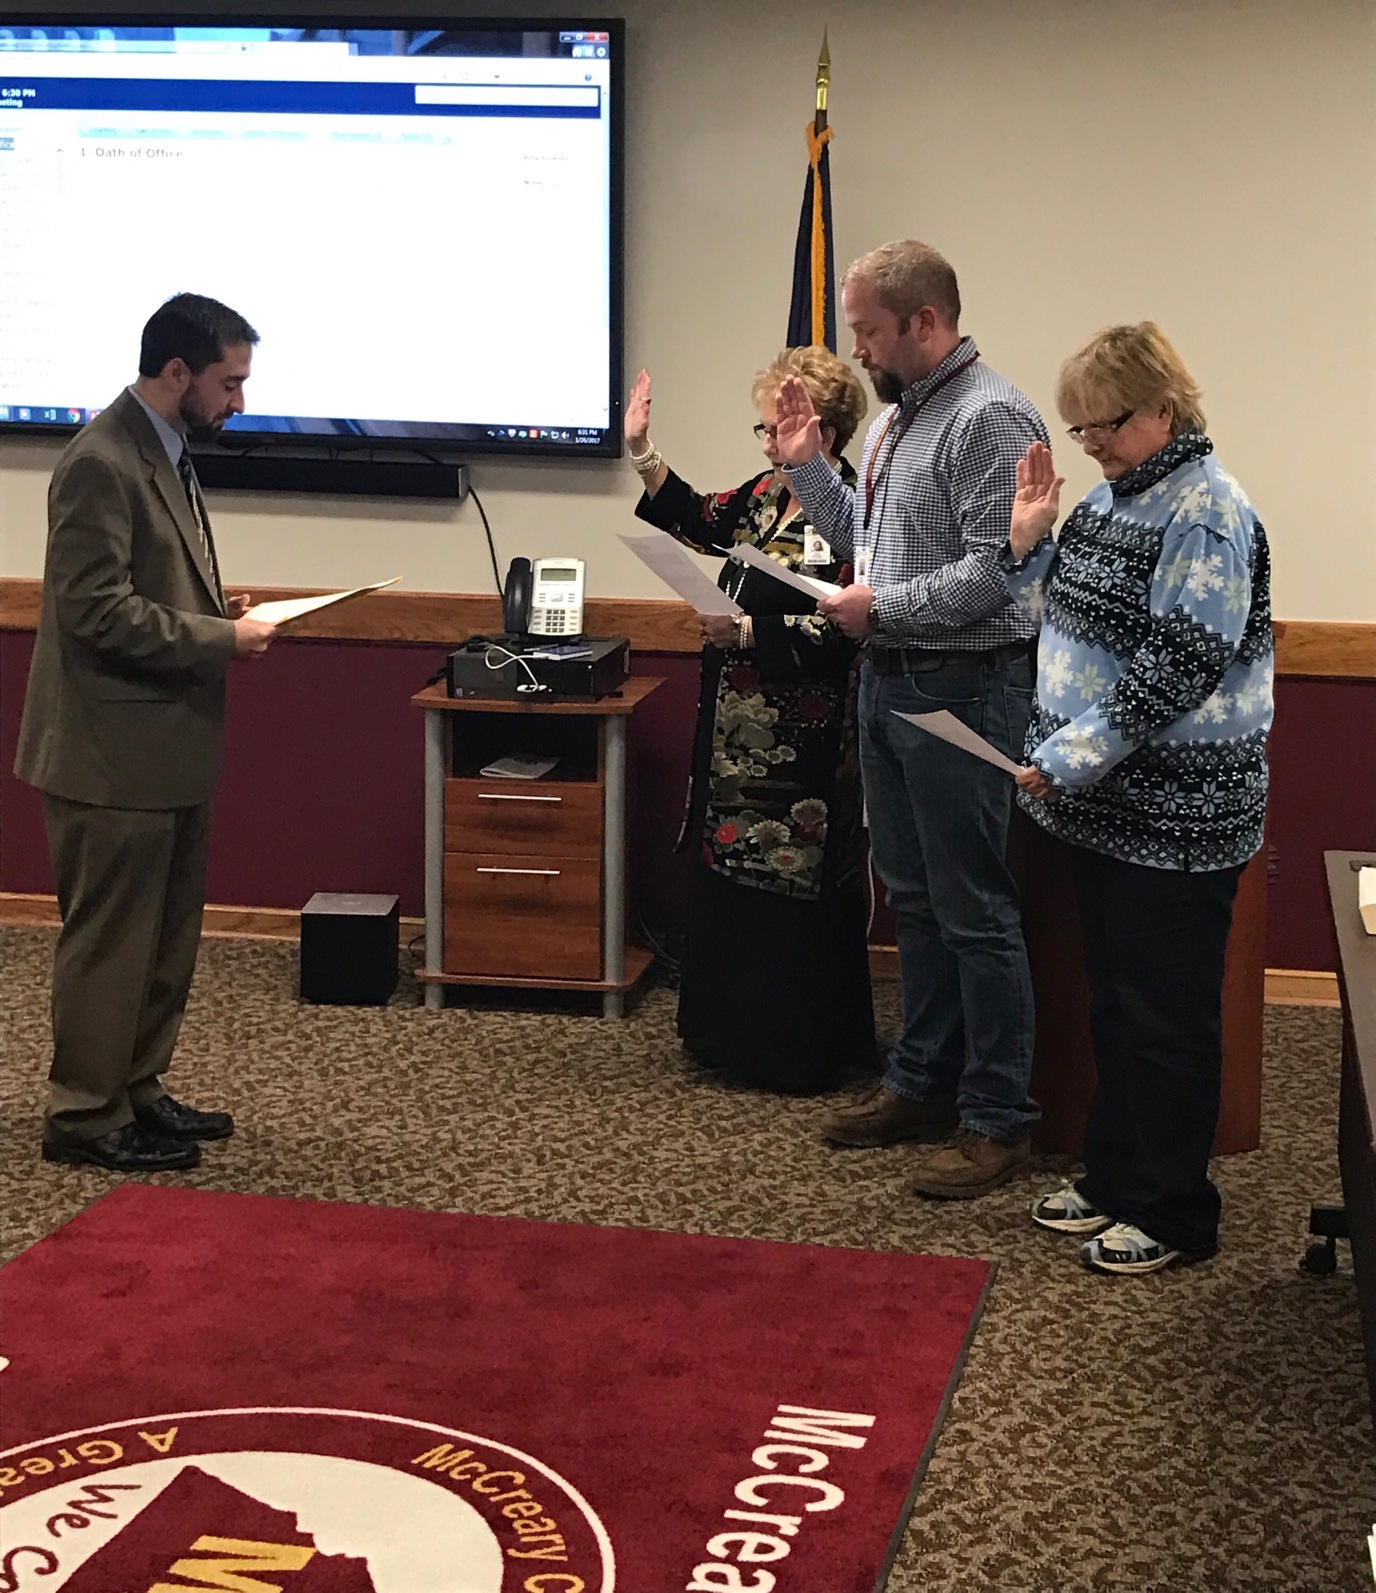 County Attorney Conley Chaney officiating the swearing in ceremony for District #1 board member Nelda Gilreath, District #3 board member Dustin Stephens, and District #5 board member Debbie Gibson.